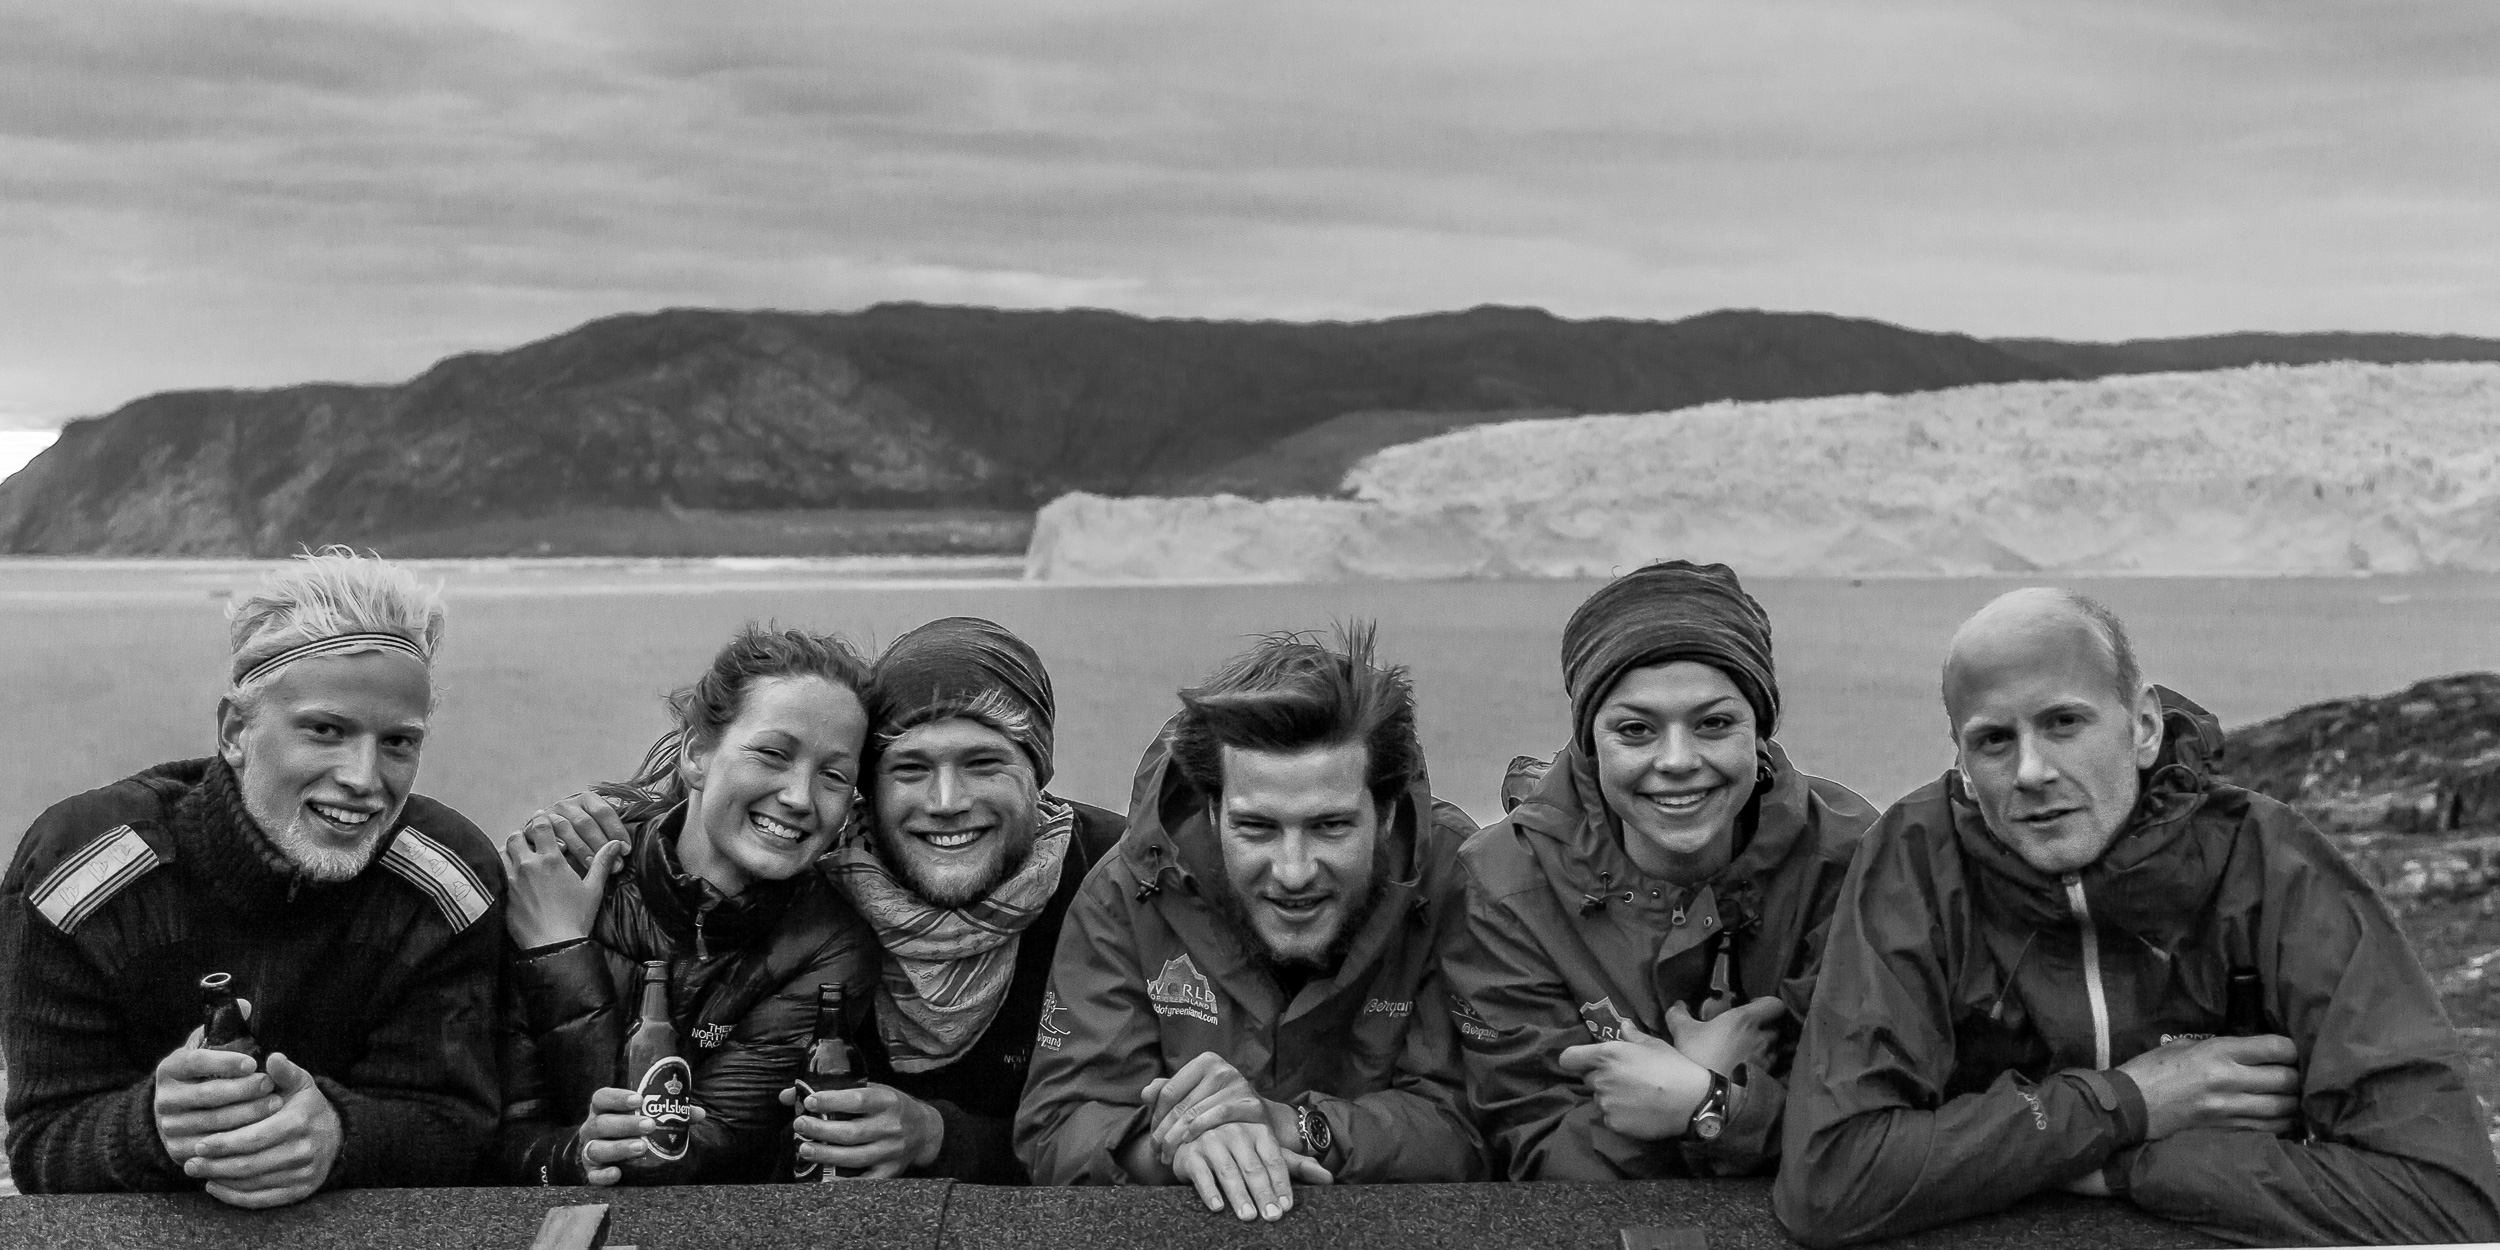 A  group portrait  of friends at the fantastic  Ice Camp Eqi  in  Greenland  with the  Eqi Glacier  in the background.